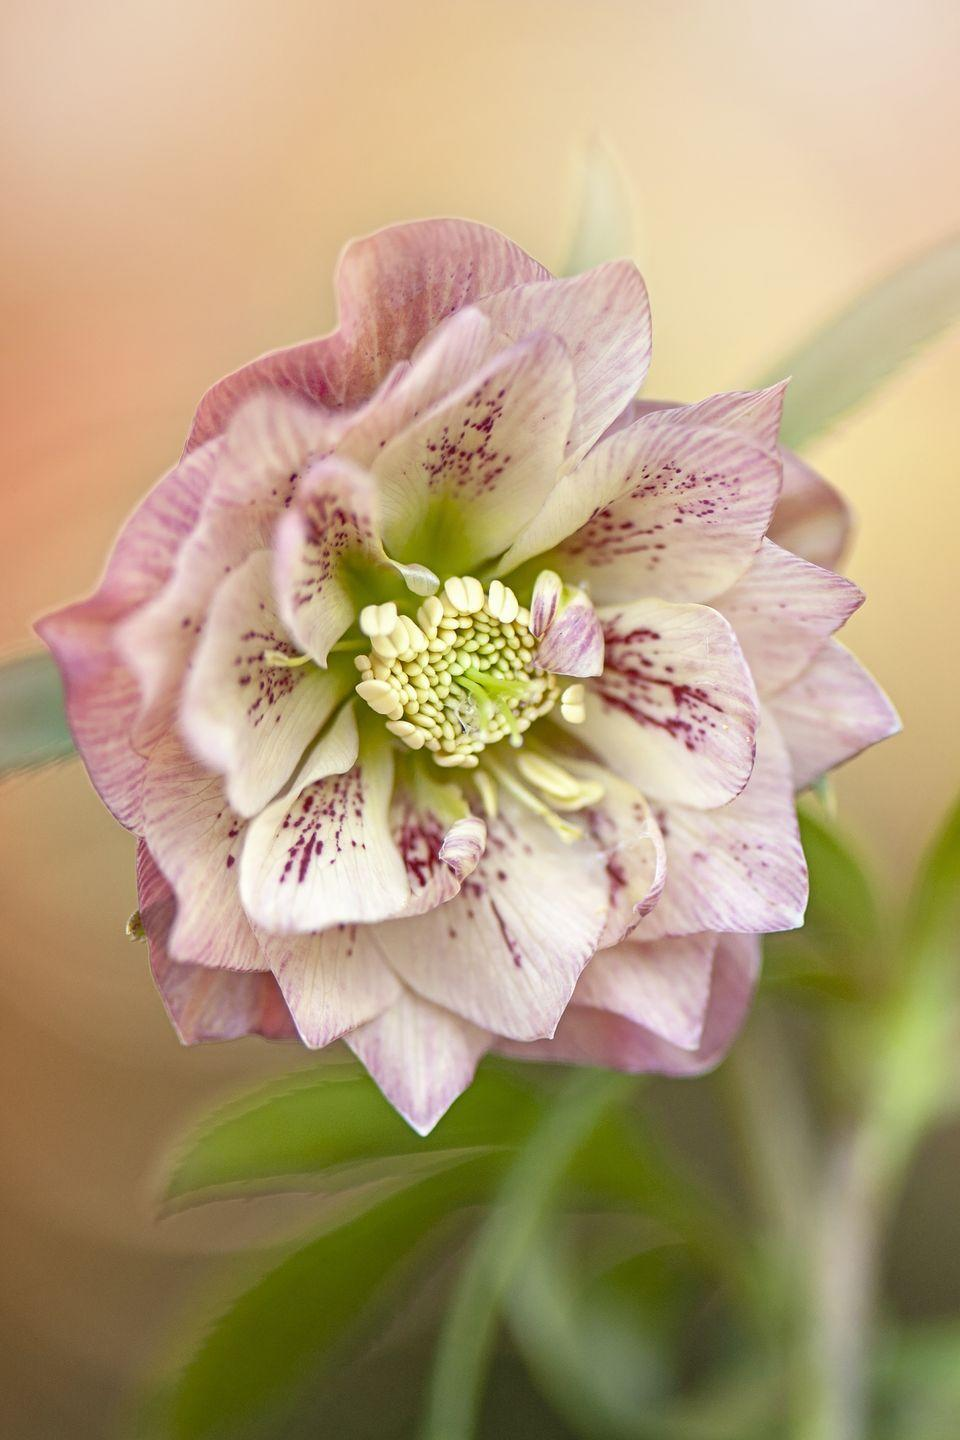 """<p>These stunning perennials, also called hellebores, appear in late winter or very early spring. Their frilly ethereal blooms appear fragile, but they're incredibly tough plants with long bloom times. Give them a few years to really show their stuff. In time, they'll spread to become a gorgeous ground cover. When deciding where to plant them, keep in mind that they need a place that's mostly shaded.</p><p><a class=""""link rapid-noclick-resp"""" href=""""https://www.bluestoneperennials.com/HEFG"""" rel=""""nofollow noopener"""" target=""""_blank"""" data-ylk=""""slk:SHOP LENTEN ROSES"""">SHOP LENTEN ROSES</a></p>"""